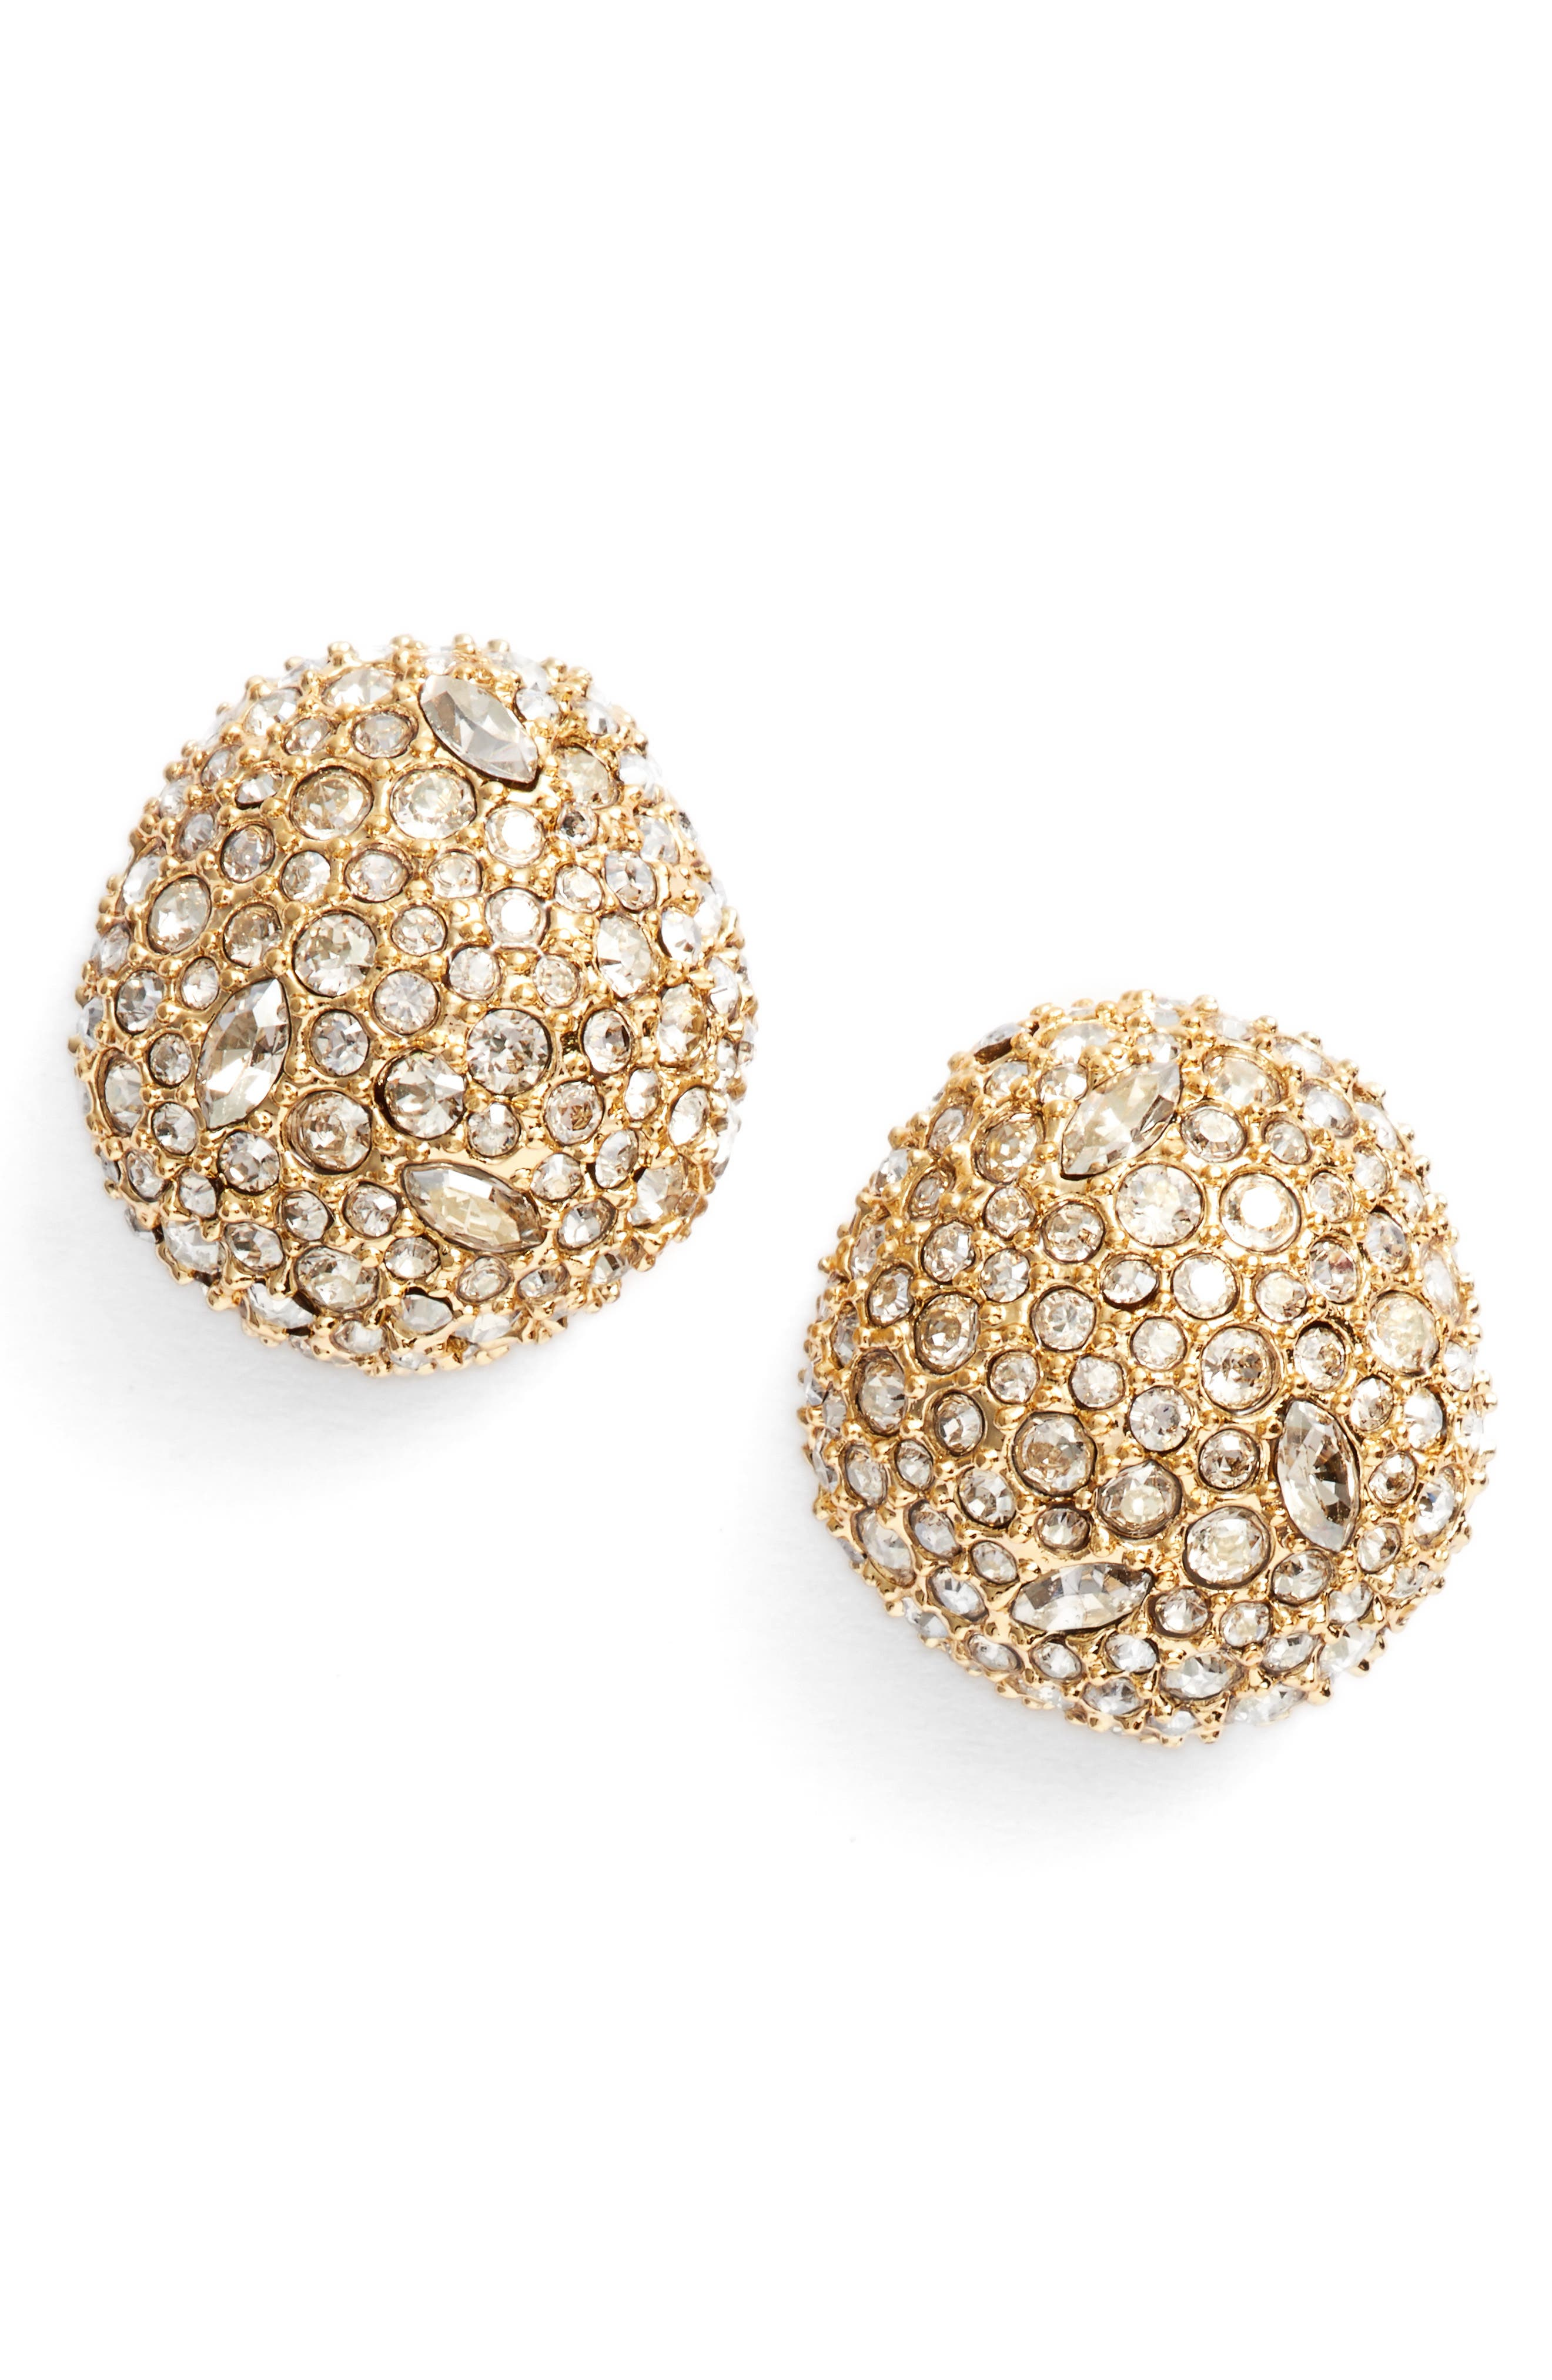 Crystal Encrusted Stud Earrings,                             Main thumbnail 1, color,                             GOLD